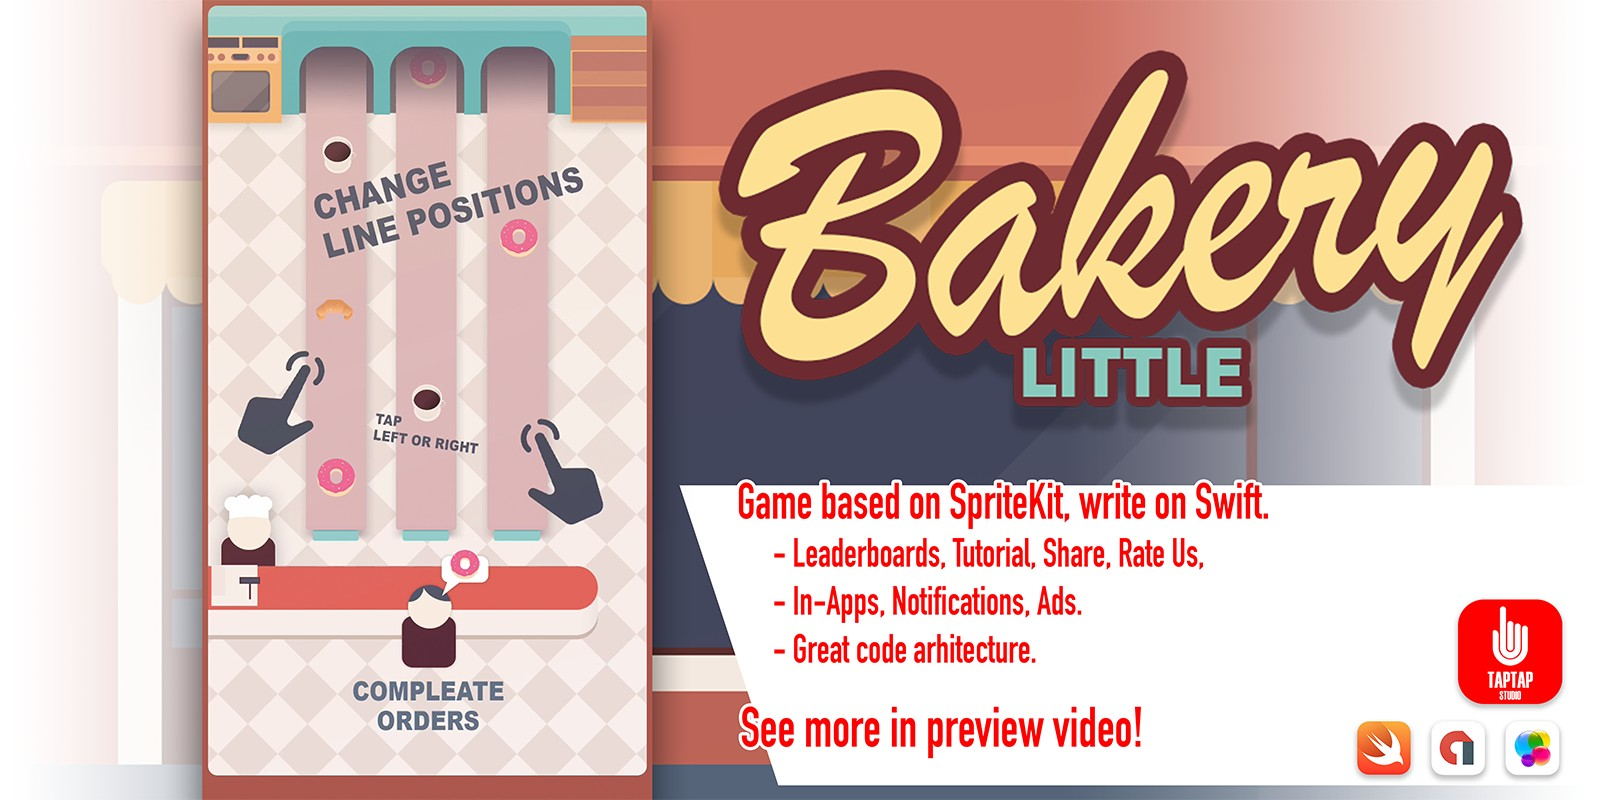 Little Bakery - iOS Source Code